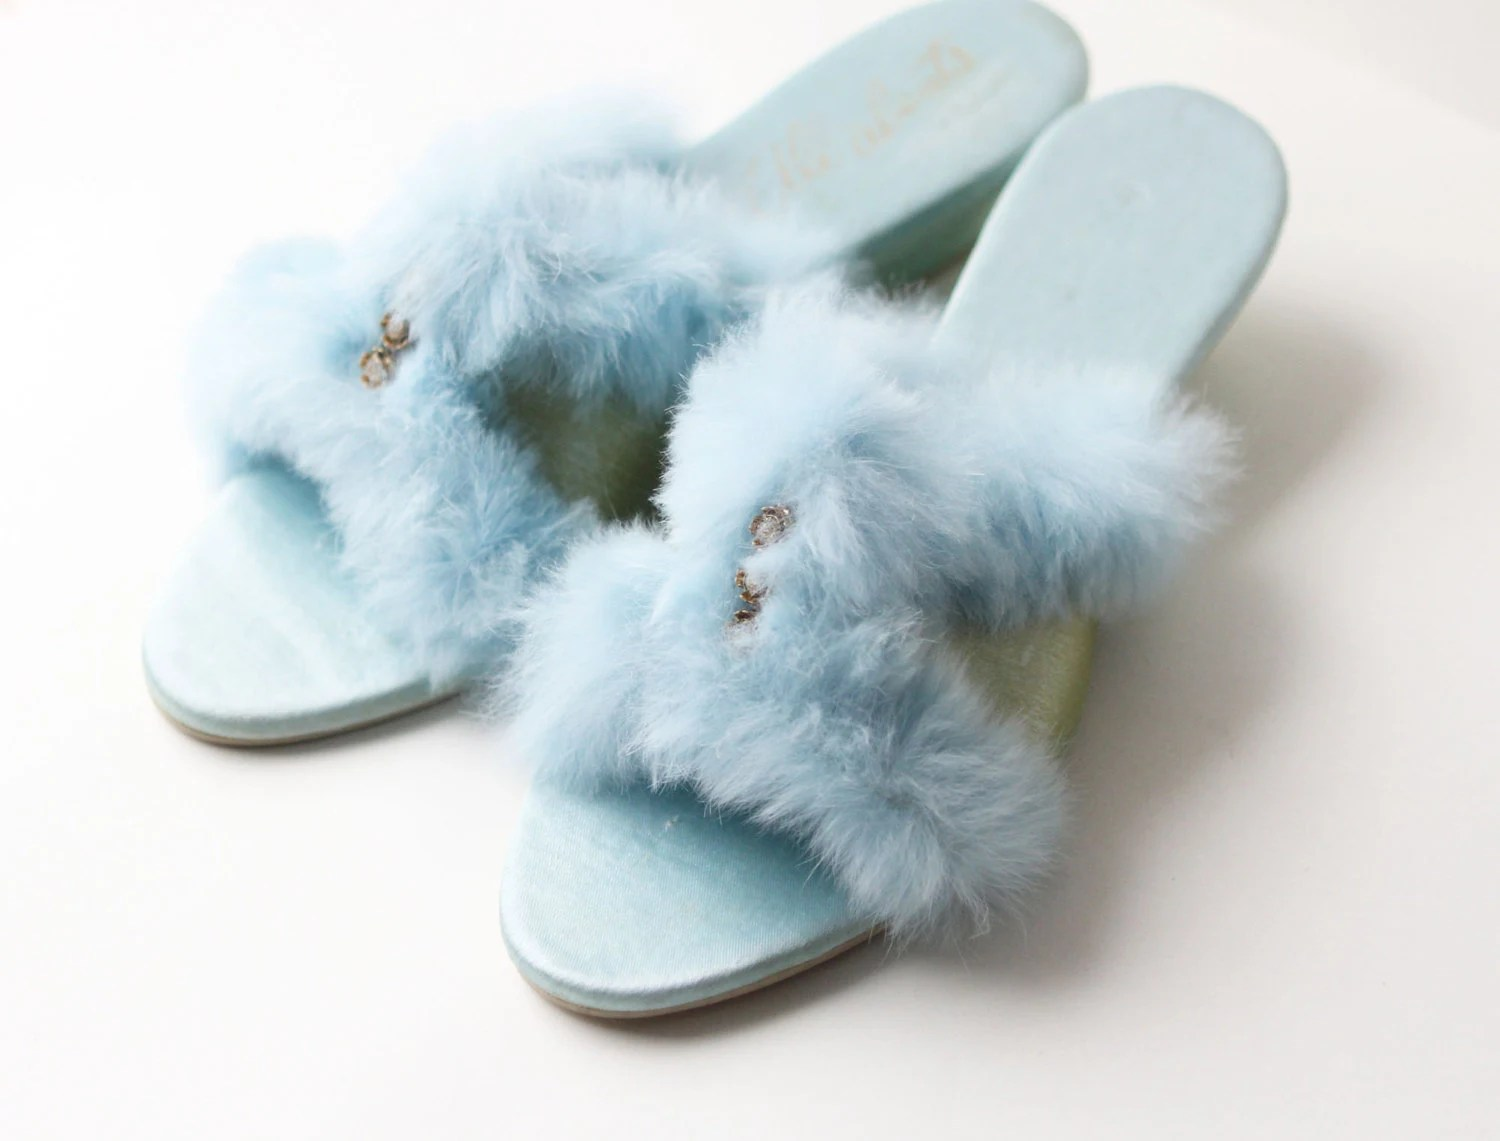 VINTAGE SLIPPERS - bedroom shoes, fuzzy powder blue - 1960s - SIZE 6.5